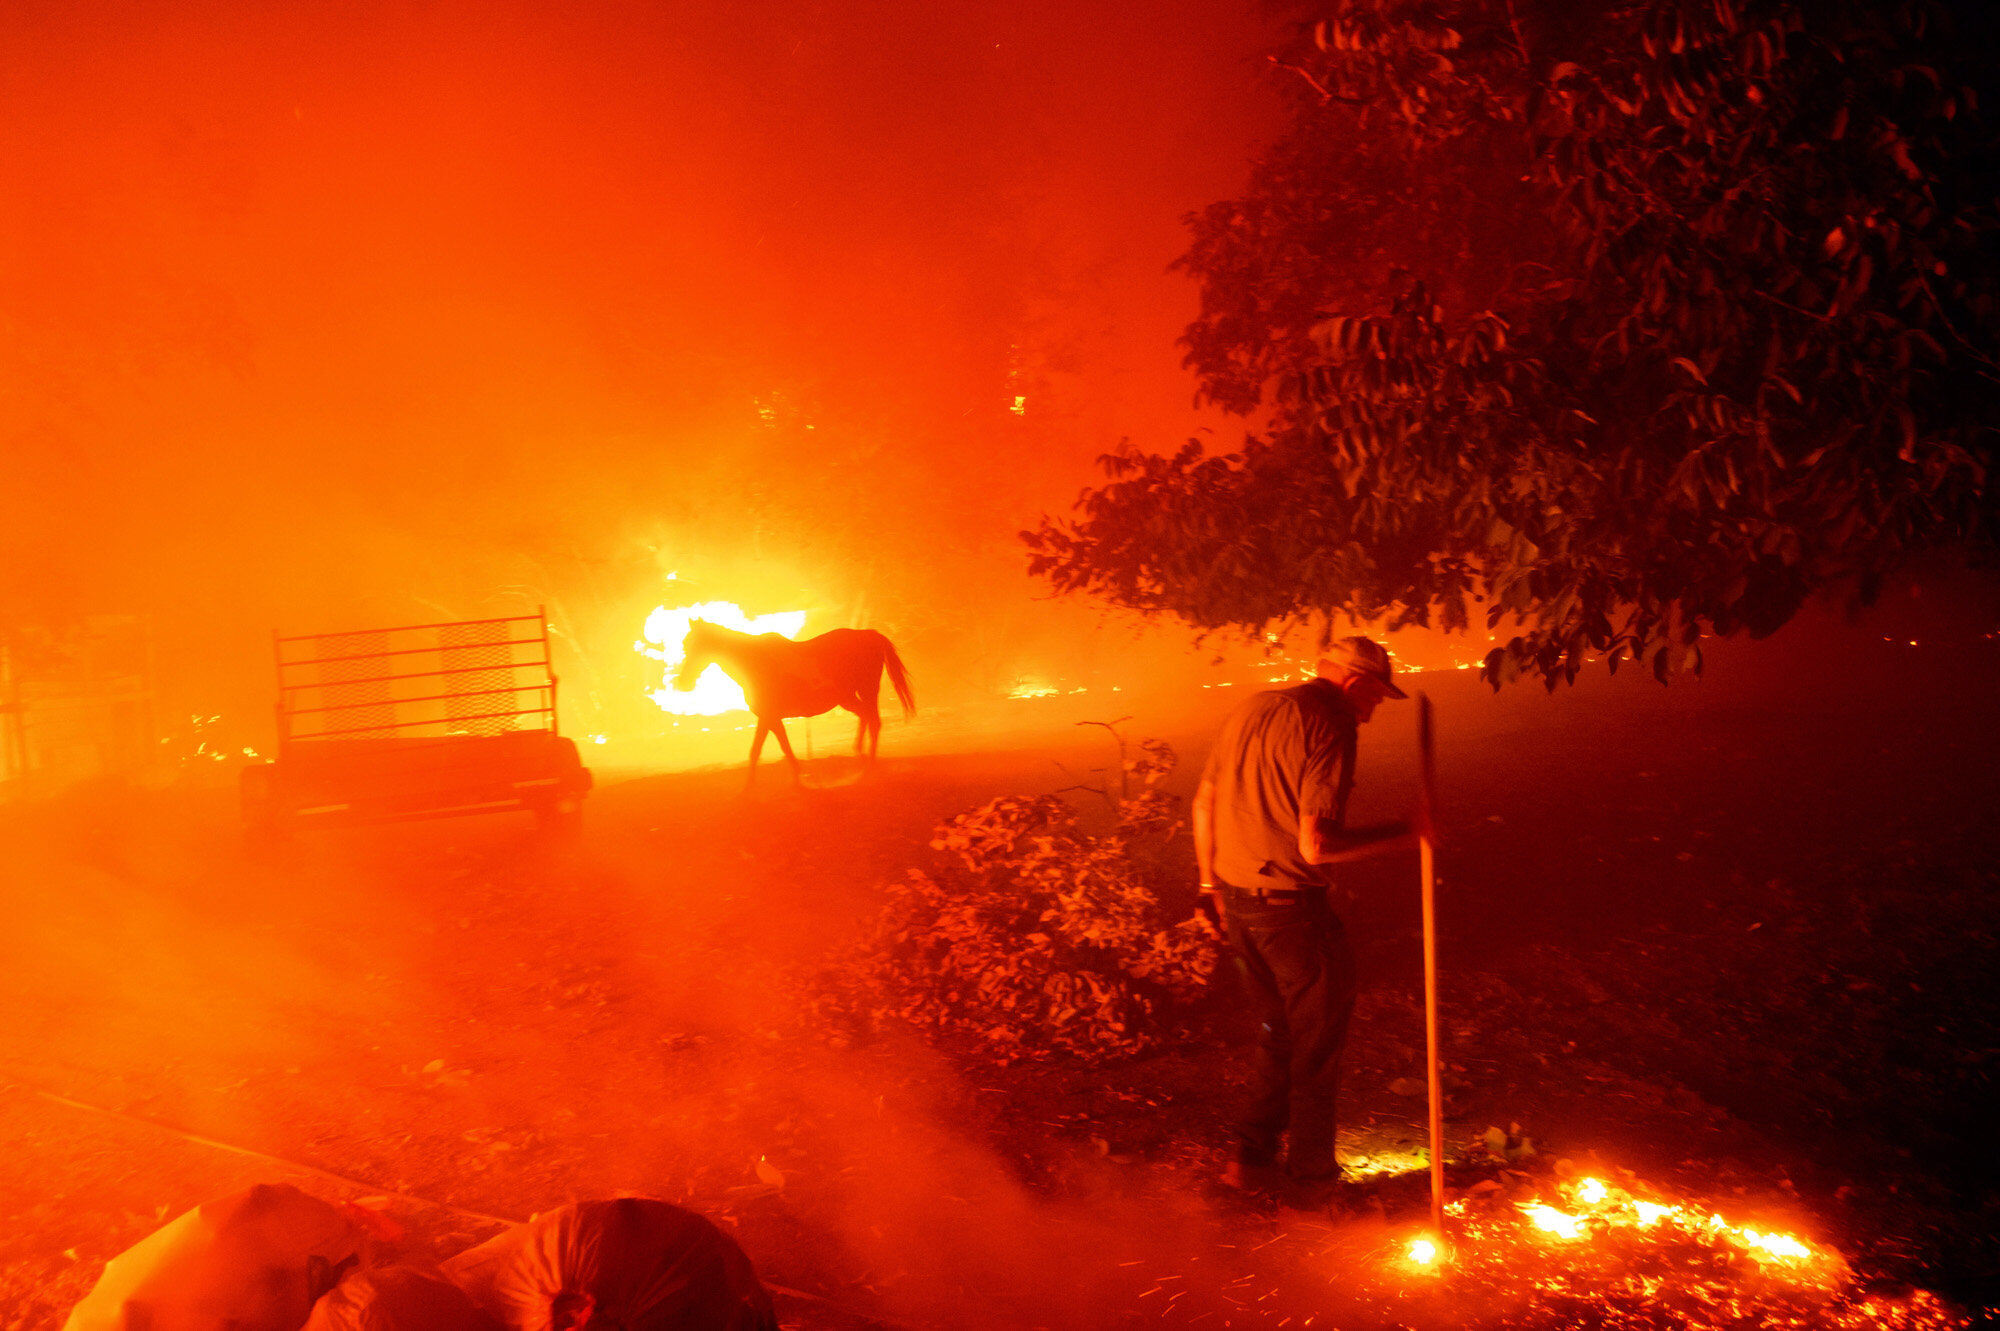 Bill Nichols, 84, works to save the home he has lived in for 77 years as a wildfire tears through Vacaville, Calif., on Aug. 19, 2020. Dozens of wildfires were sparked by lightning strikes during a statewide heat wave. (AP Photo/Noah Berger)